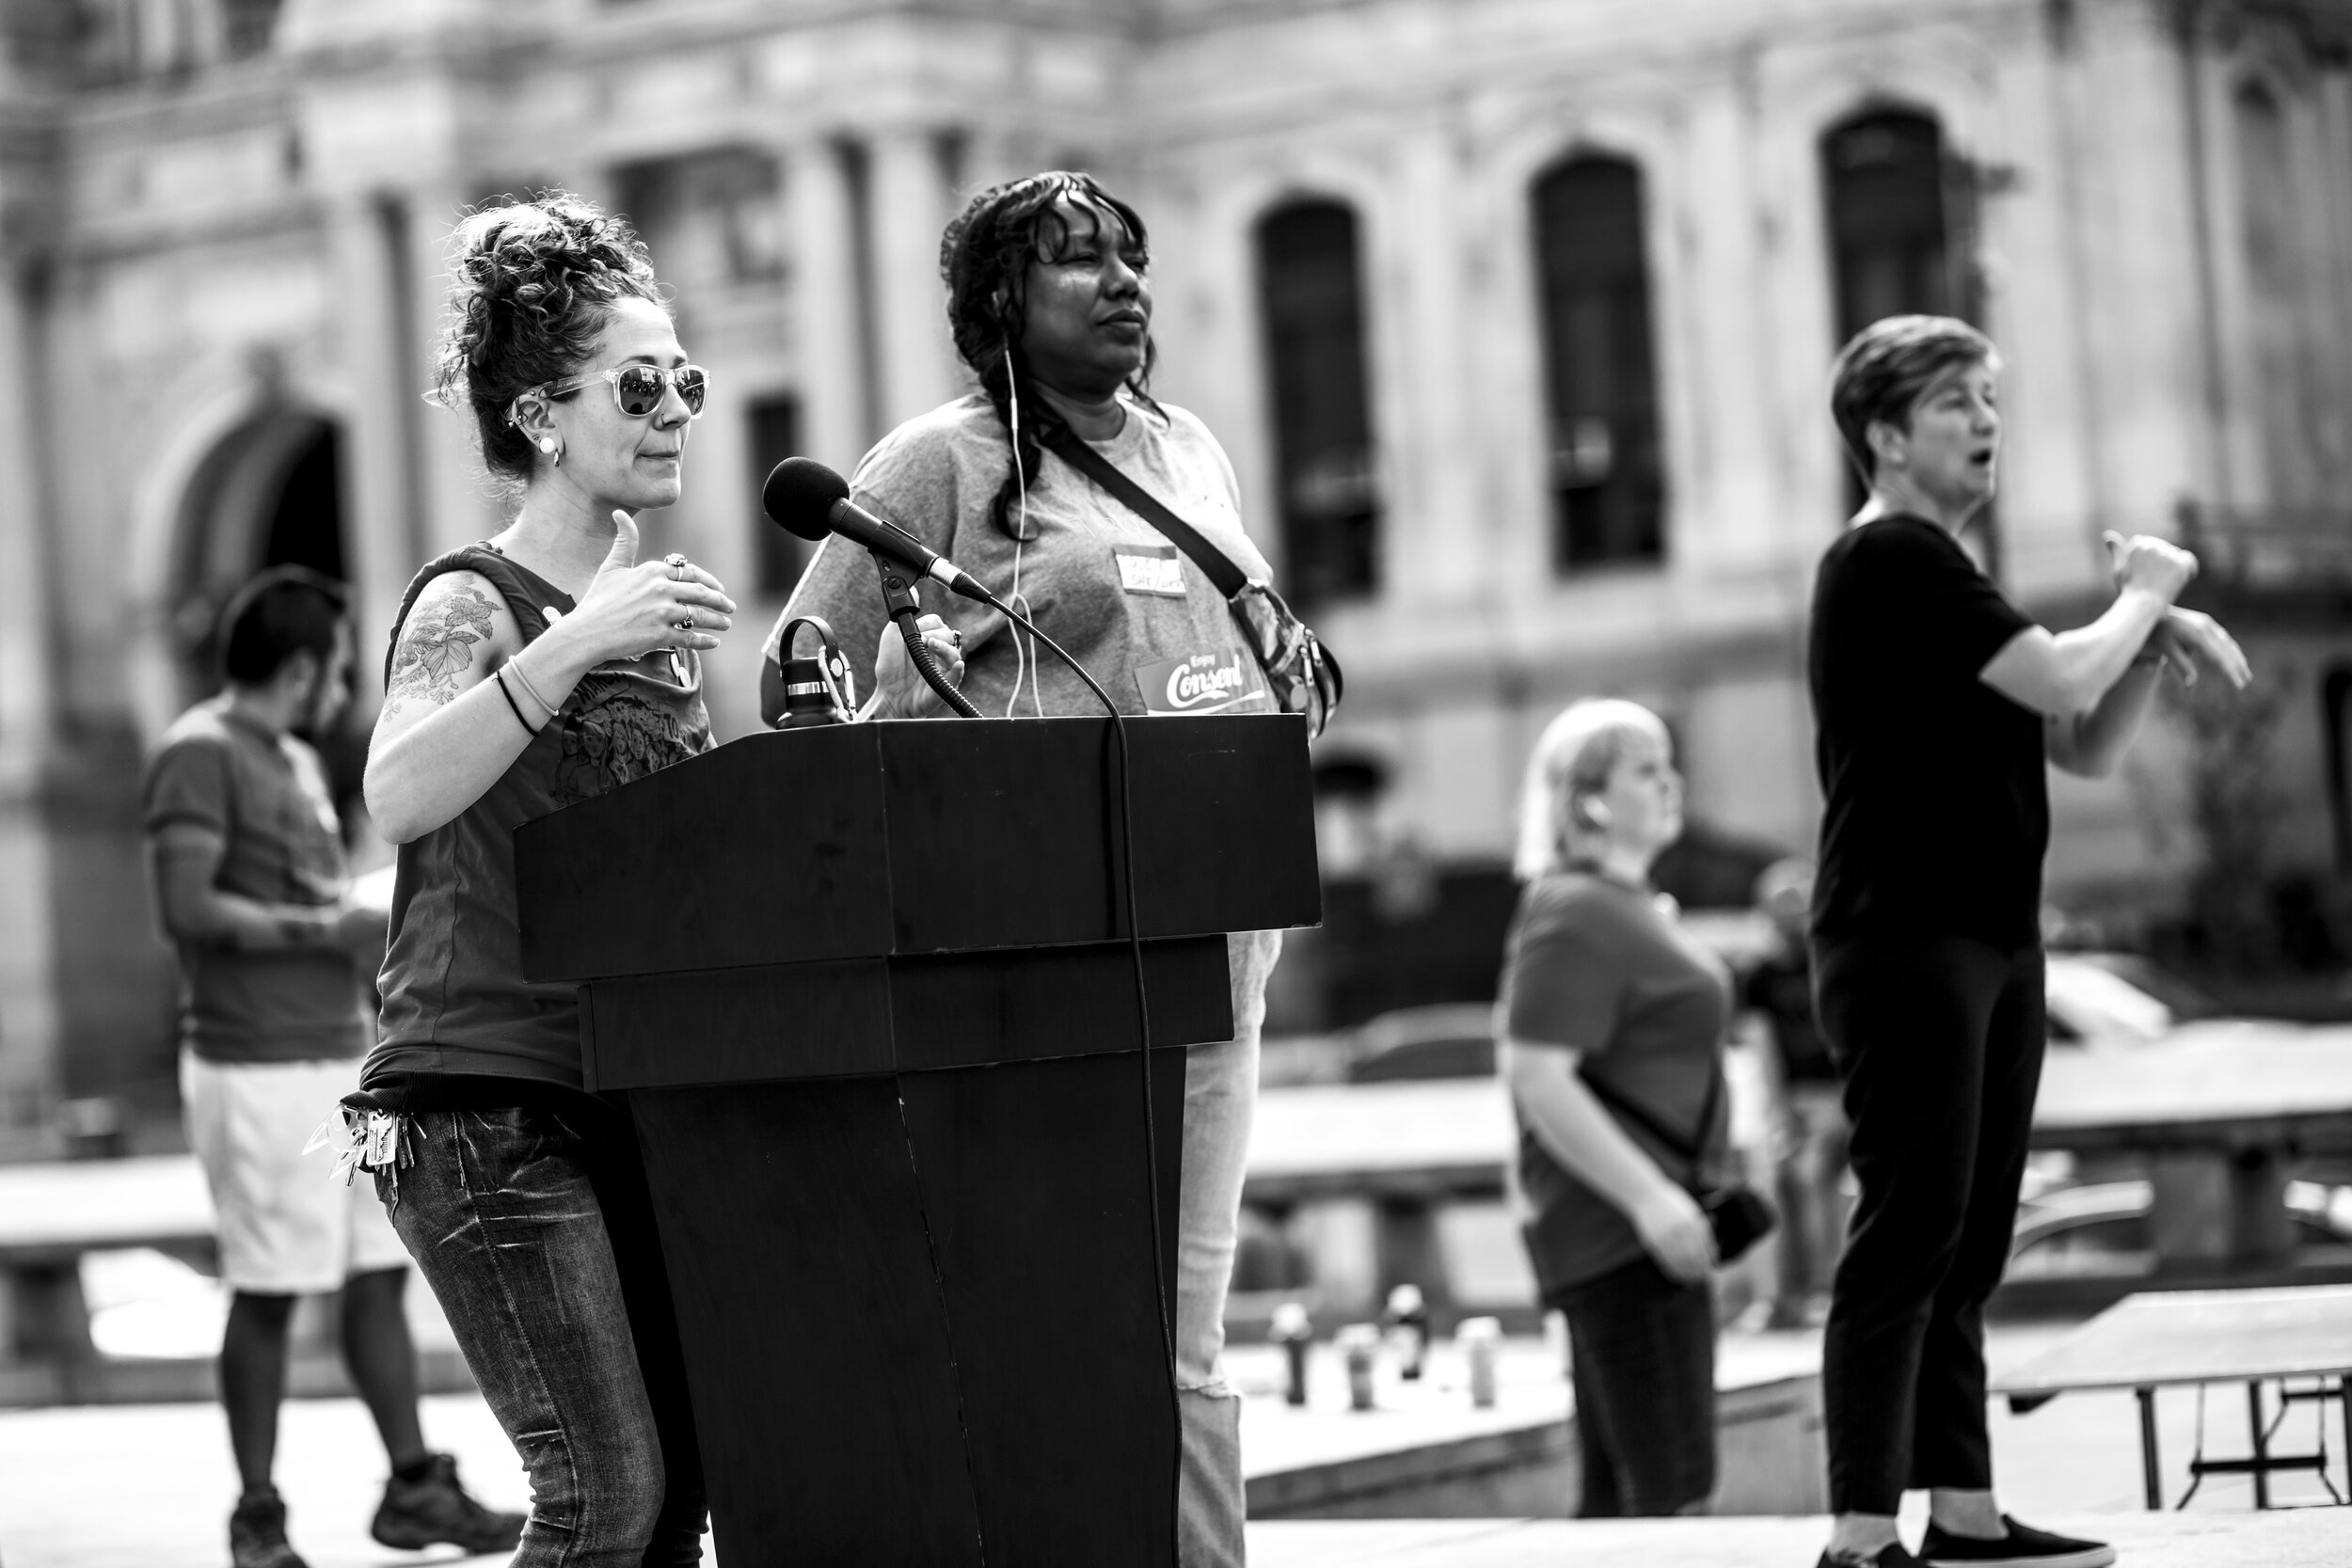 MarchToEndRapeCulture_2019_MikeArrison_BW_092919_0026.jpg